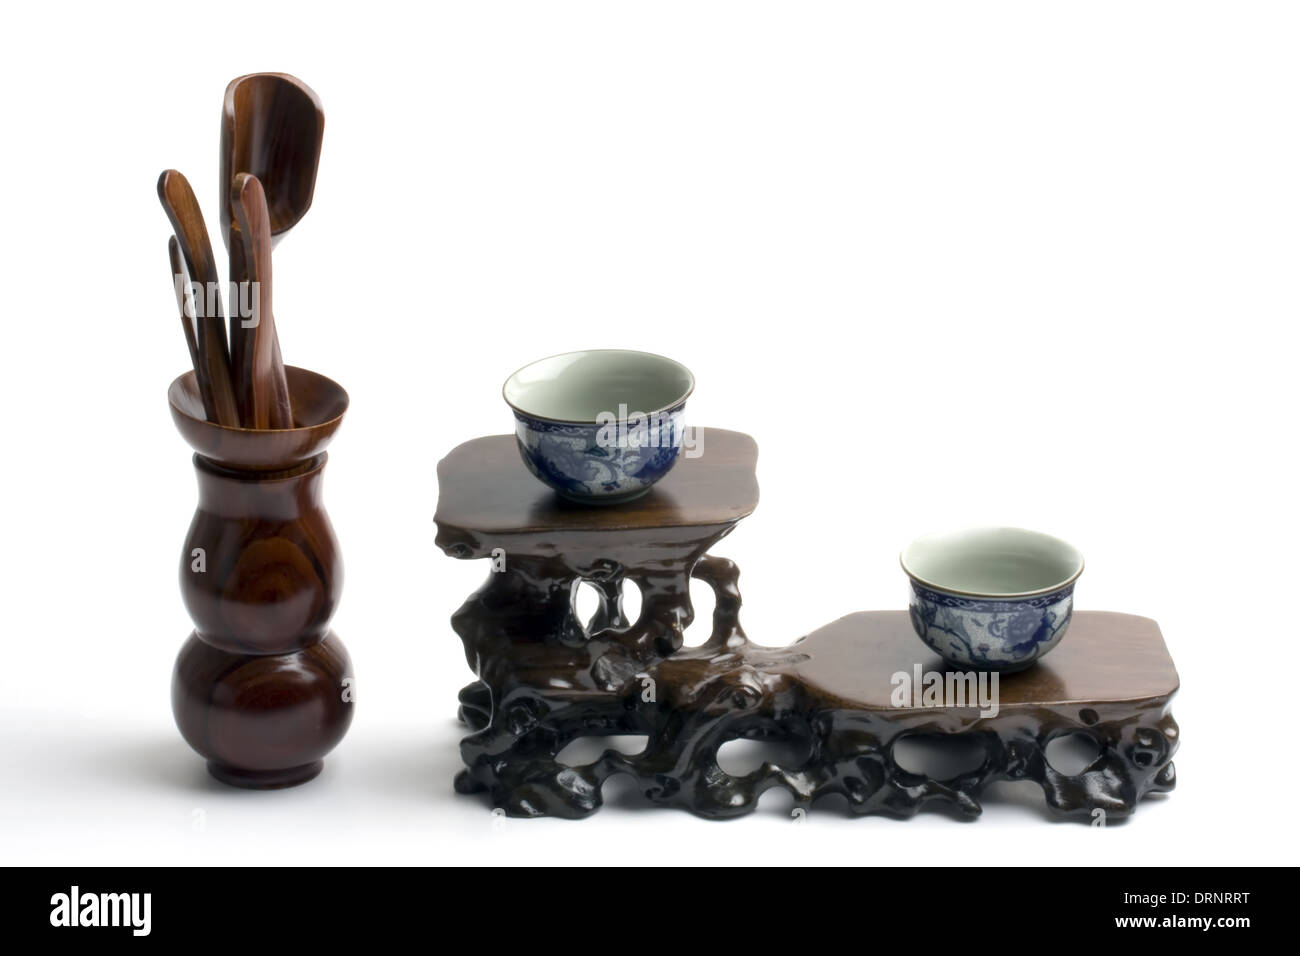 Tea set and tools - Stock Image